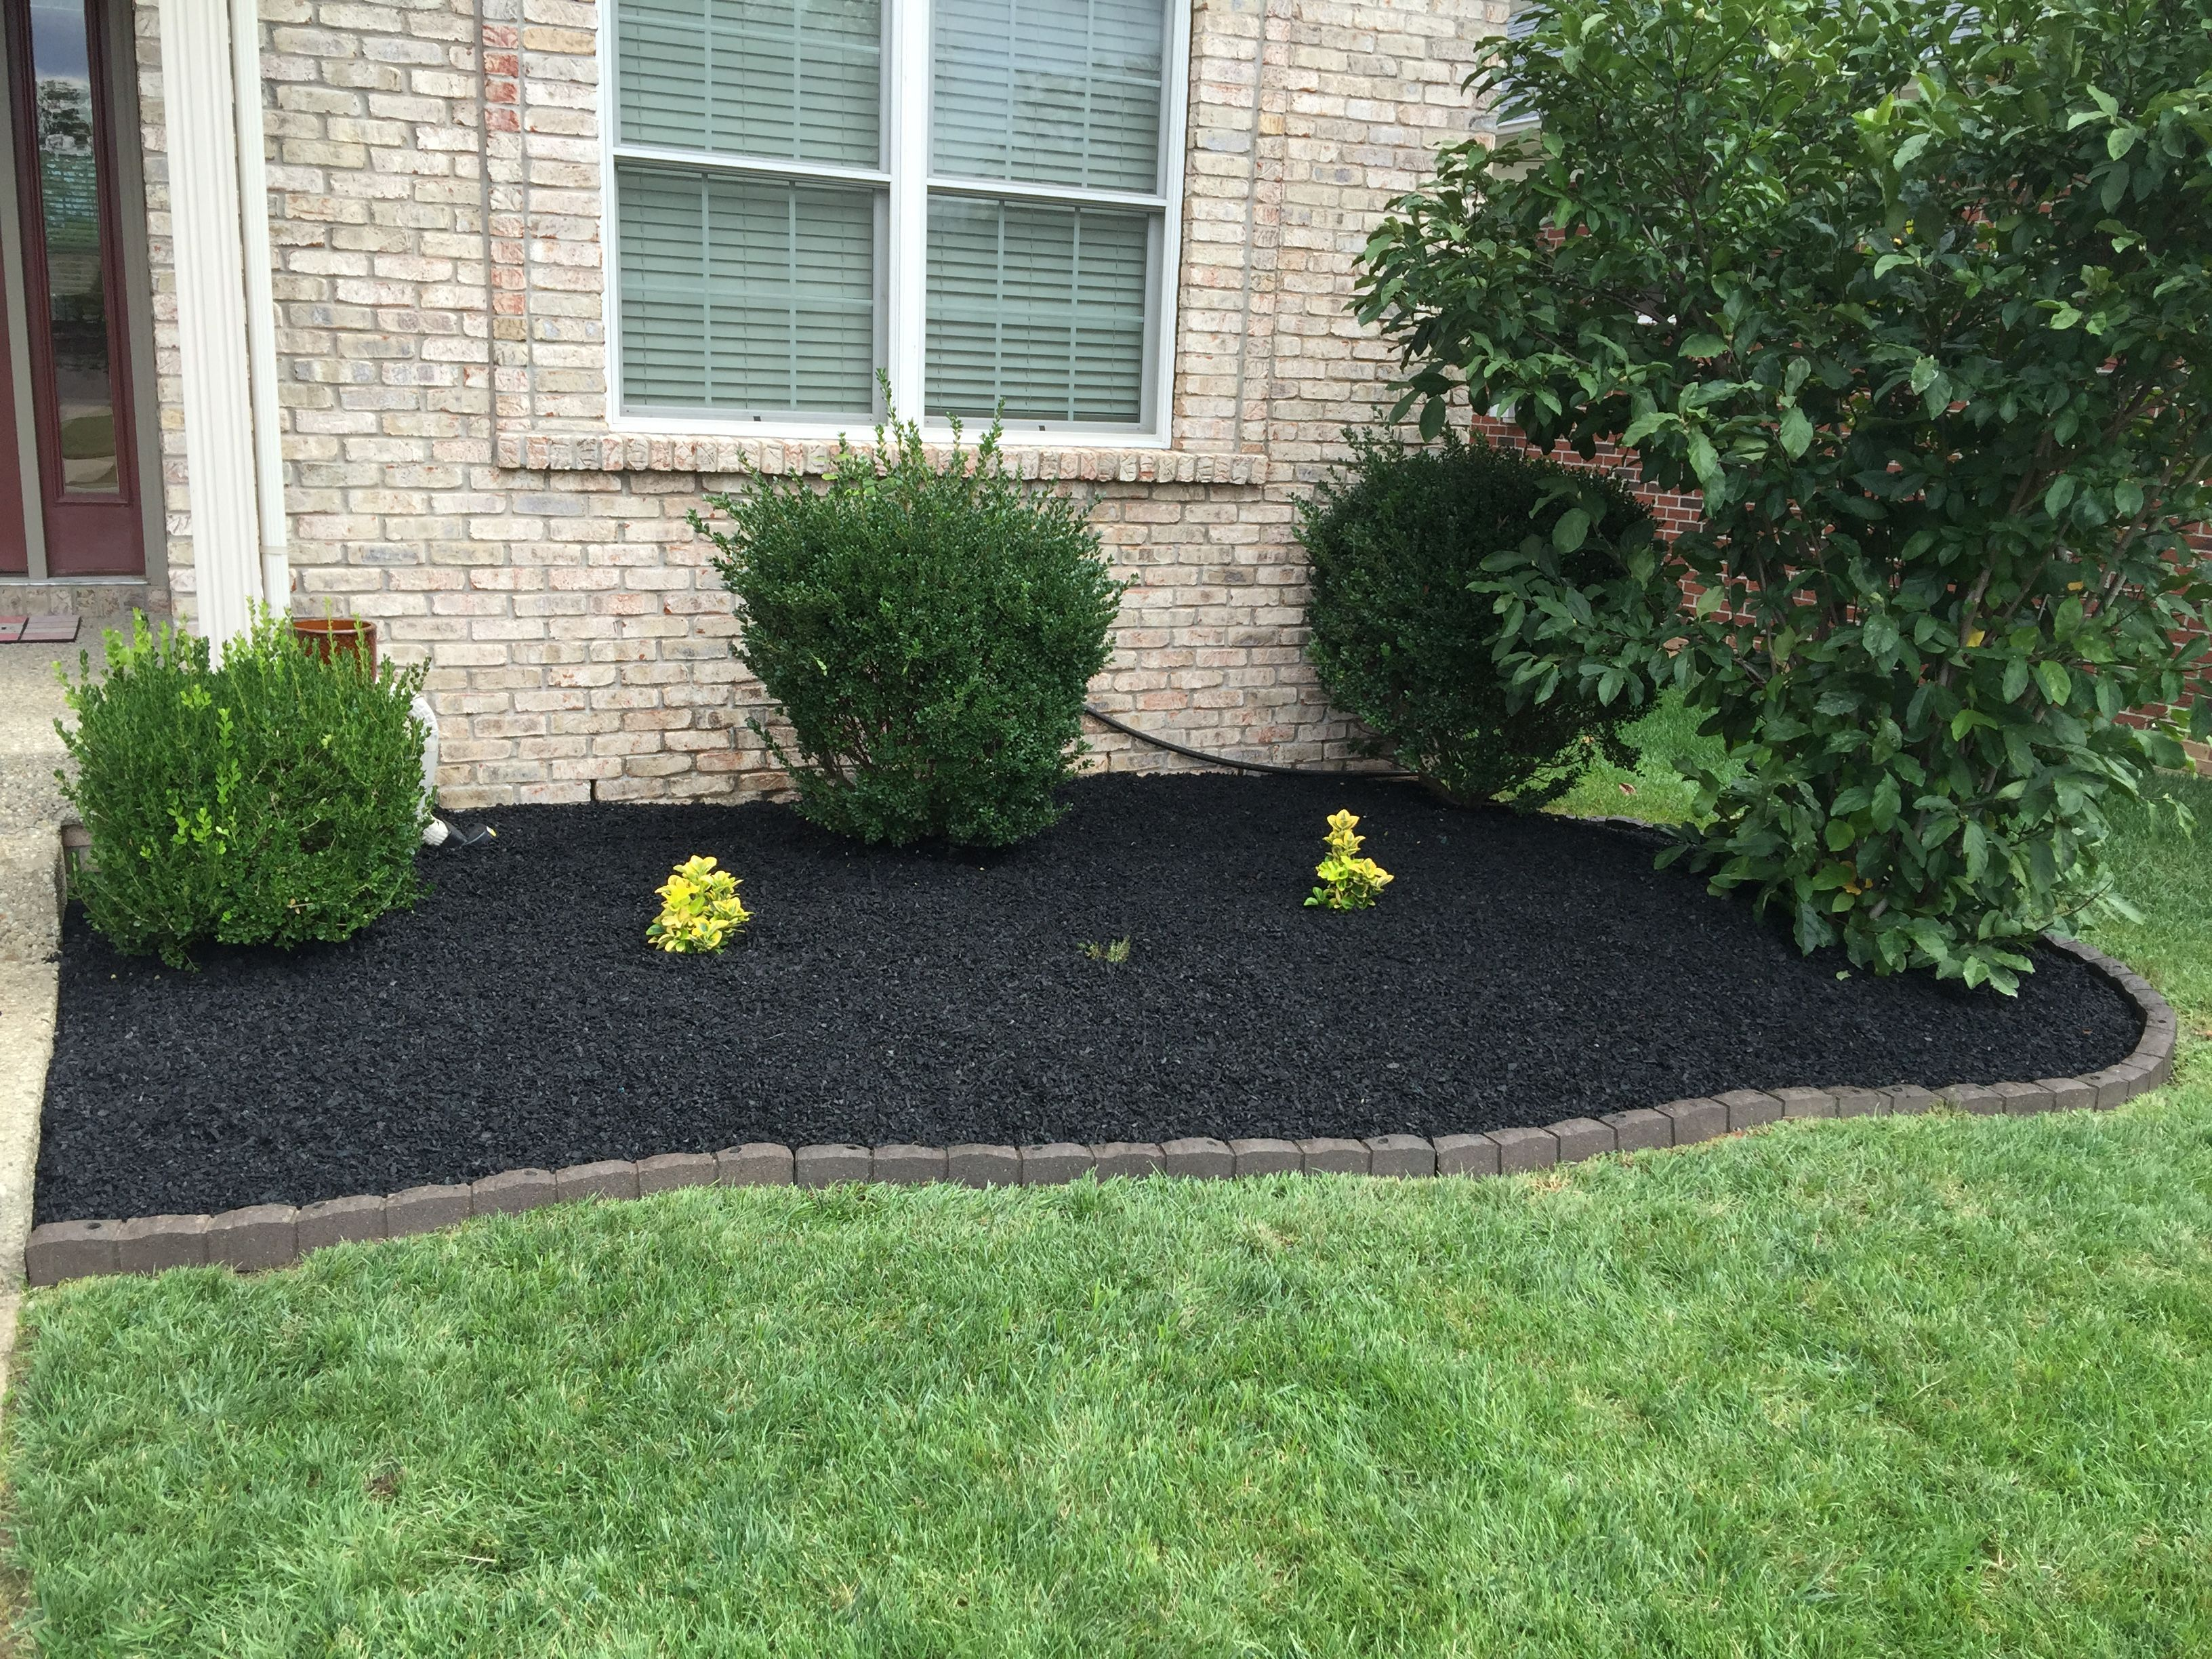 Can rubber mulch prevent weeds in my flower bed